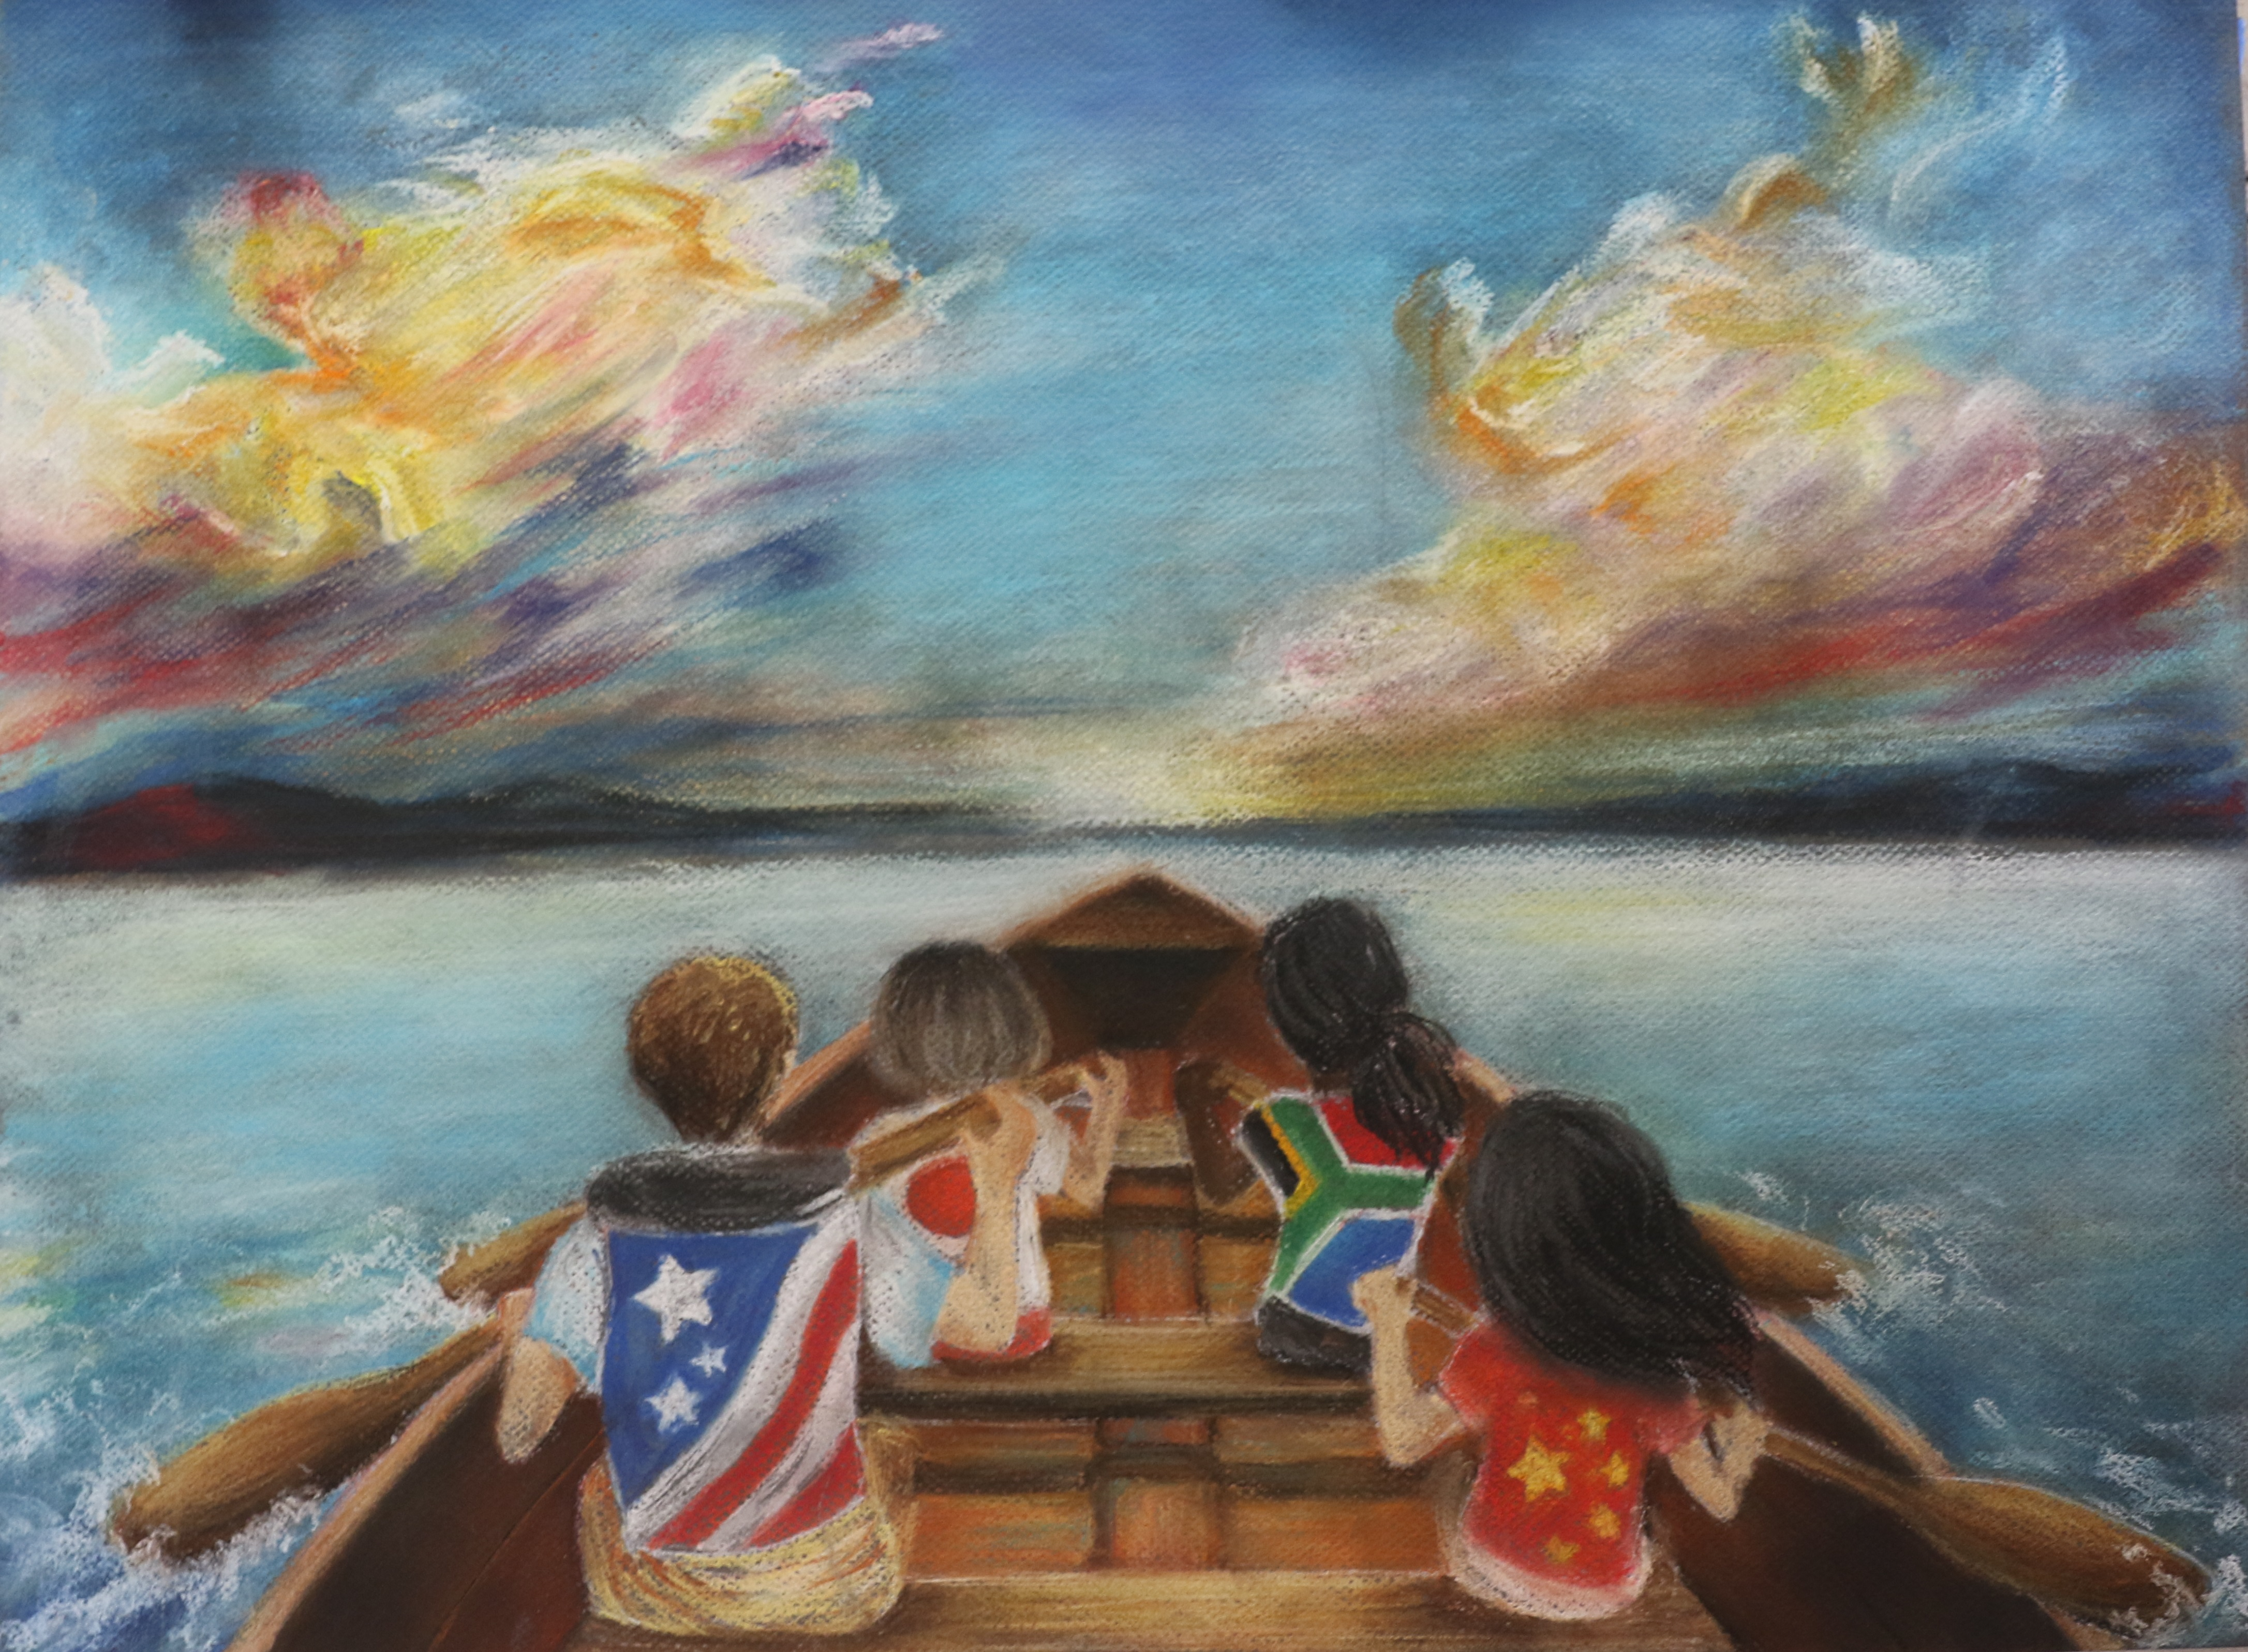 d2868dc31 2017 National Art Competition Winners: Our Community, Our Future